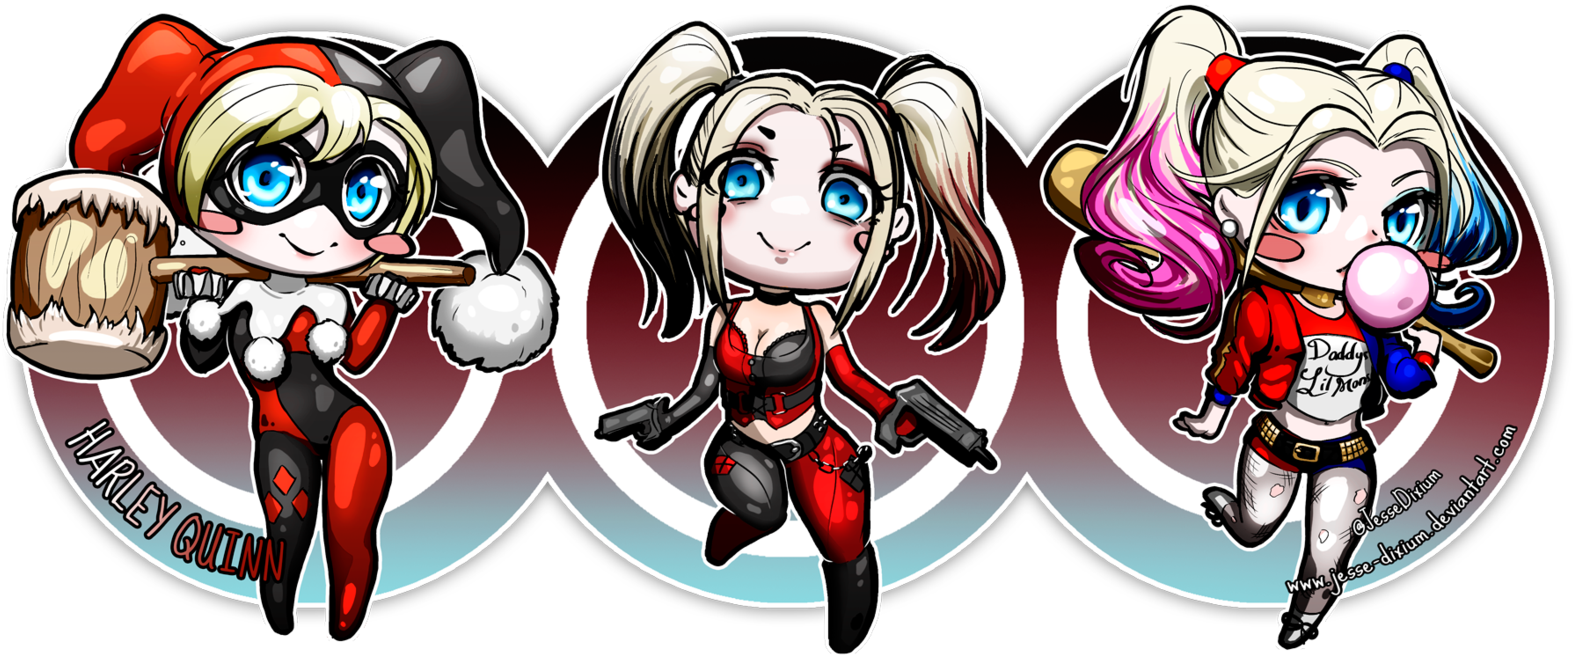 Download Harley Quinn Kawaii Png харли квинн чиби Png